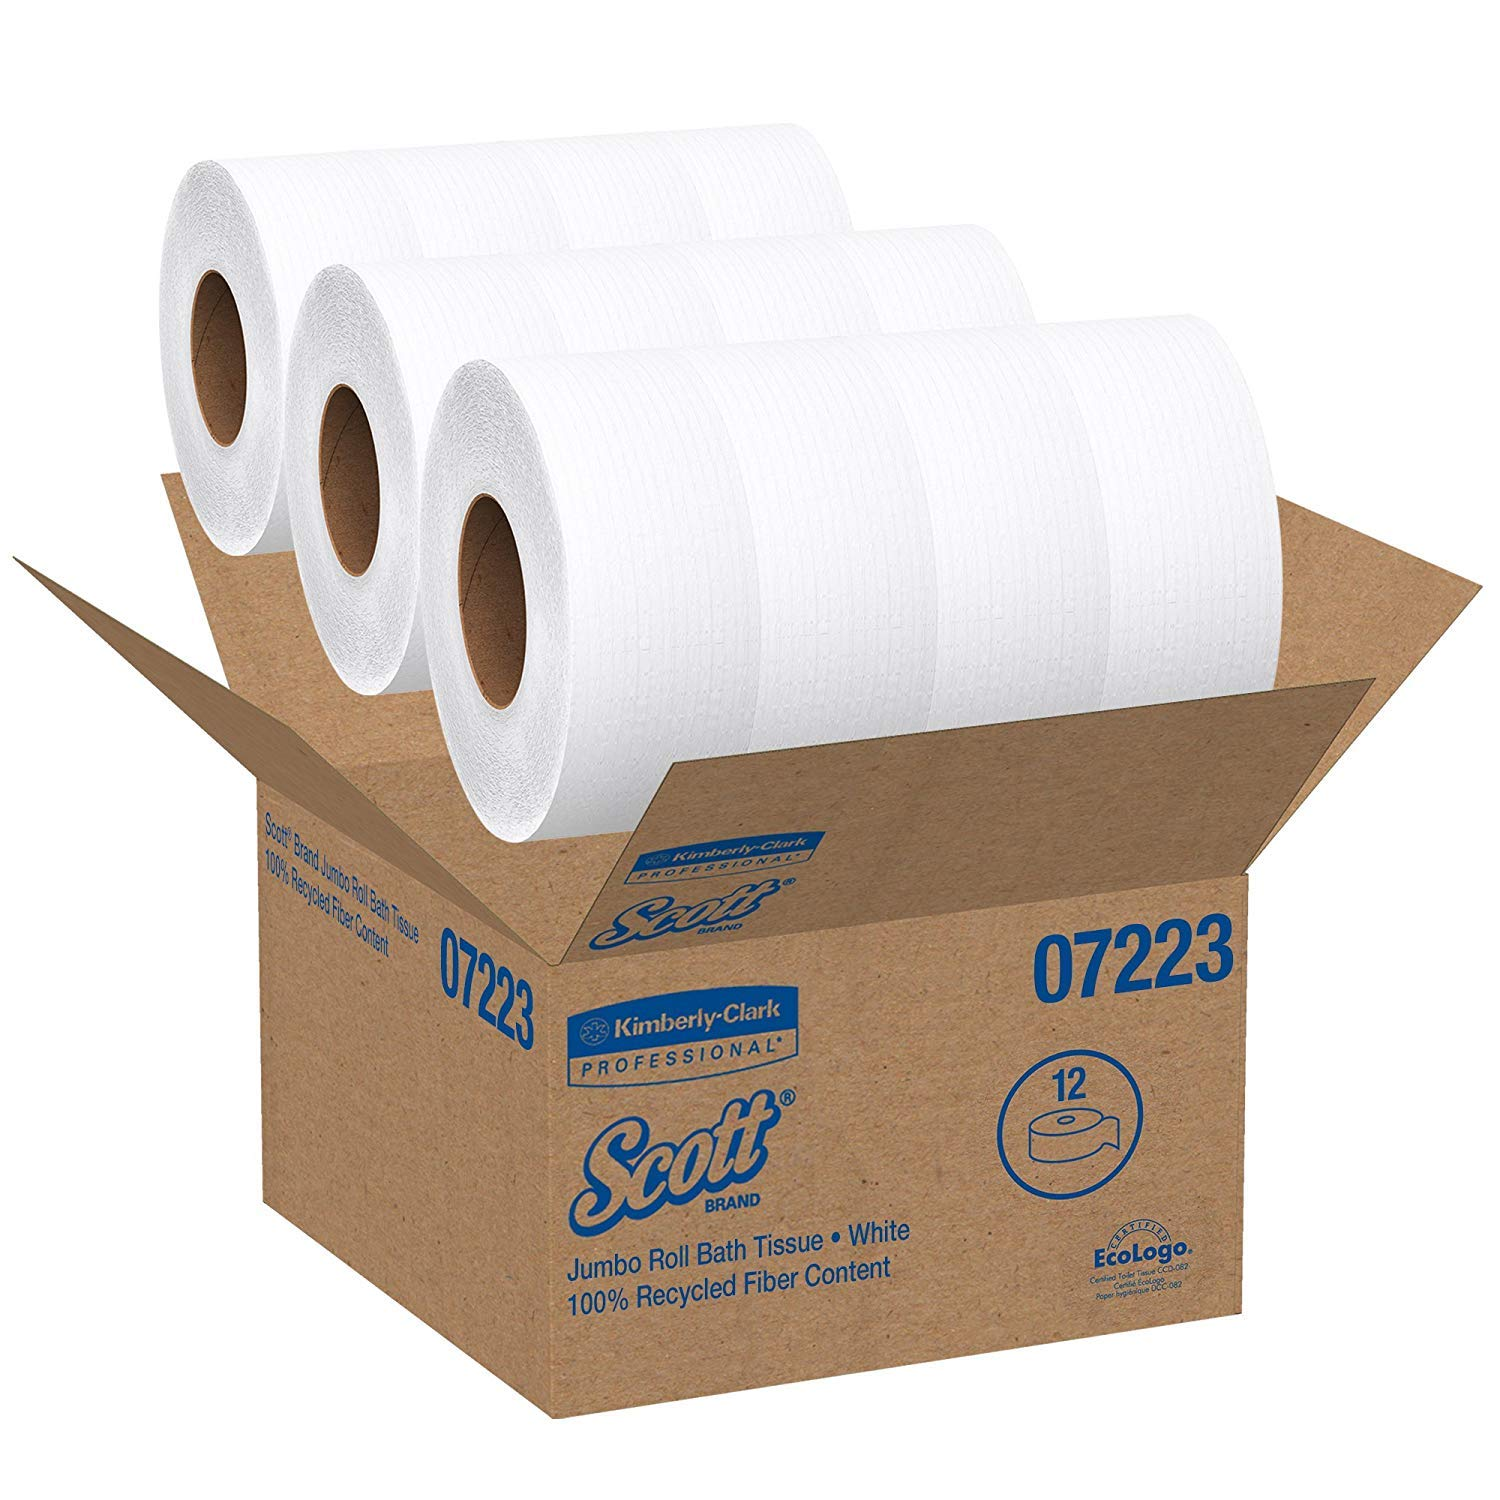 Kimberly-Clark ProfessionalA Scott Essential Jumbo Roll (JR) Commercial Toilet Paper (07223), 1-PLY, White, 12 Rolls/Case, 2,000' / Roll (4 Cases)